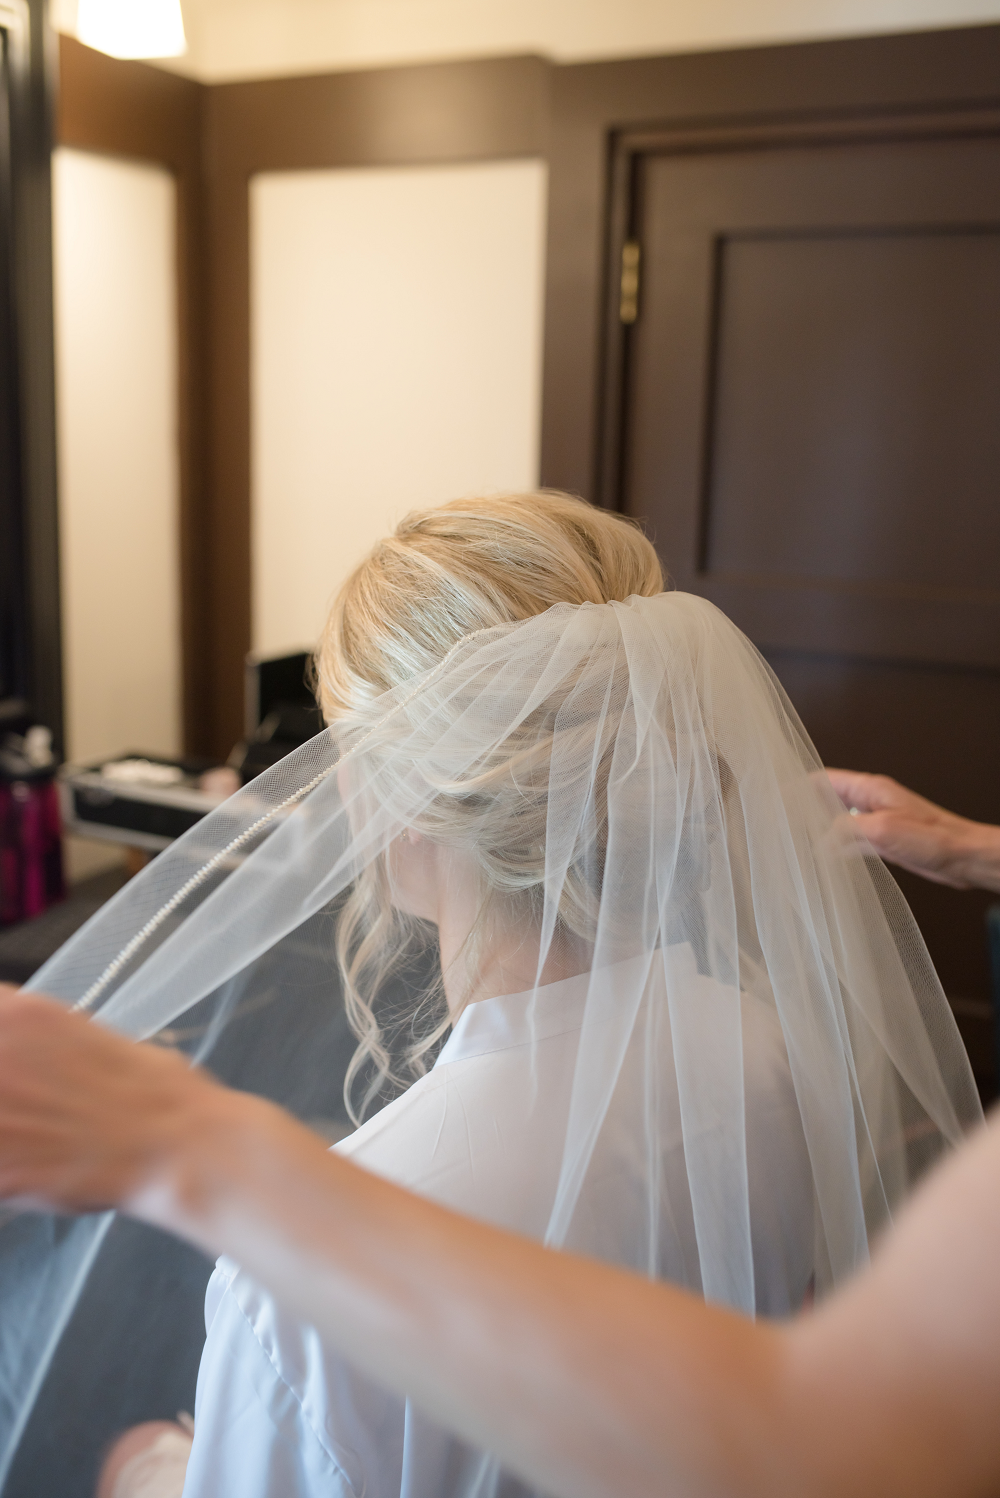 DESTINATION WEDDING IN TRAVERSE CITY WITH KRISTEN AND SCOTT Bride Getting Ready